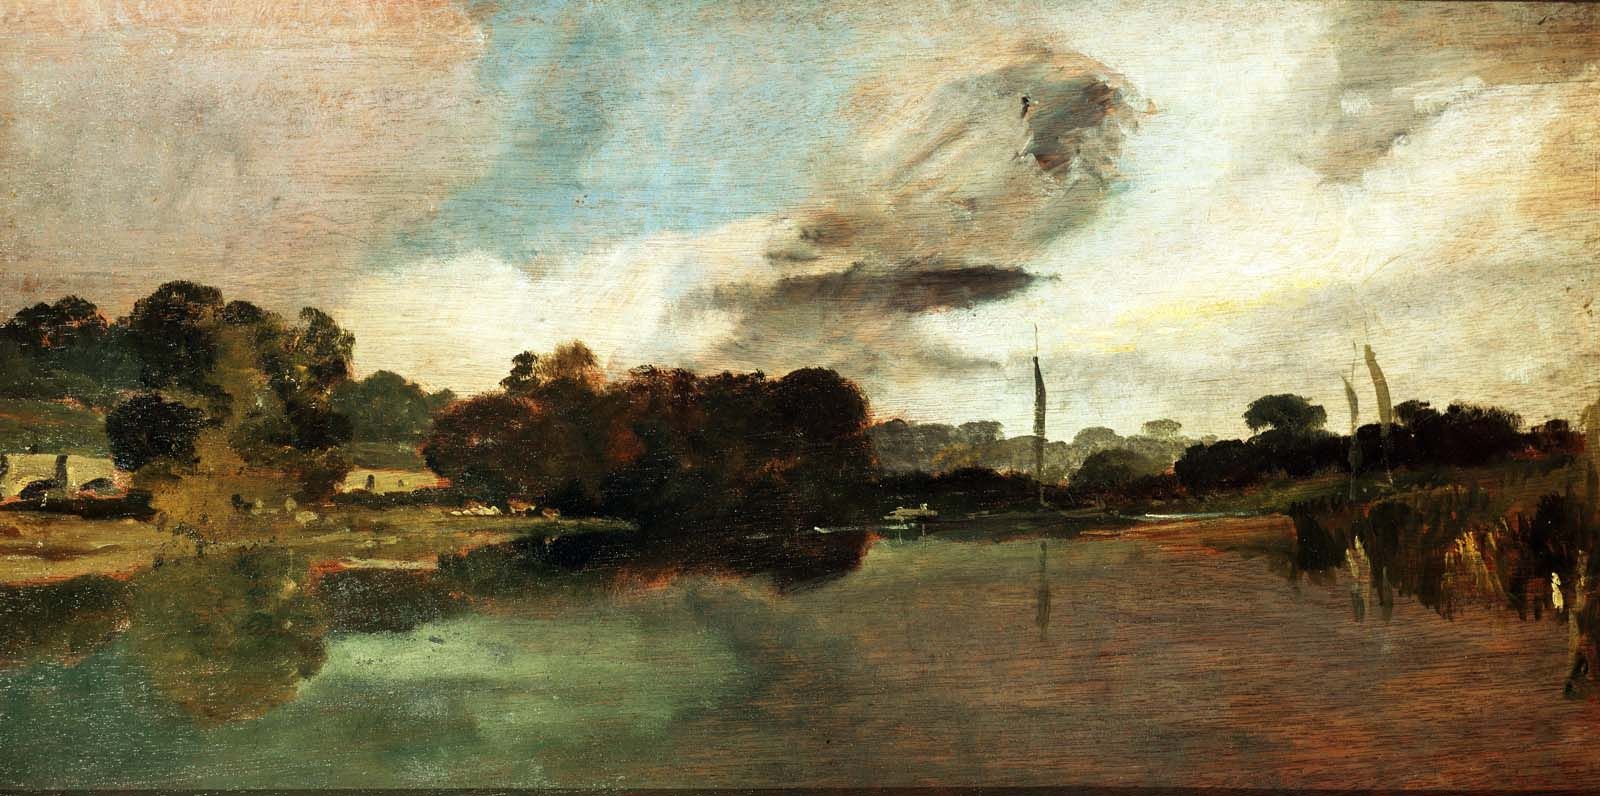 a panoramic painting of a river scene